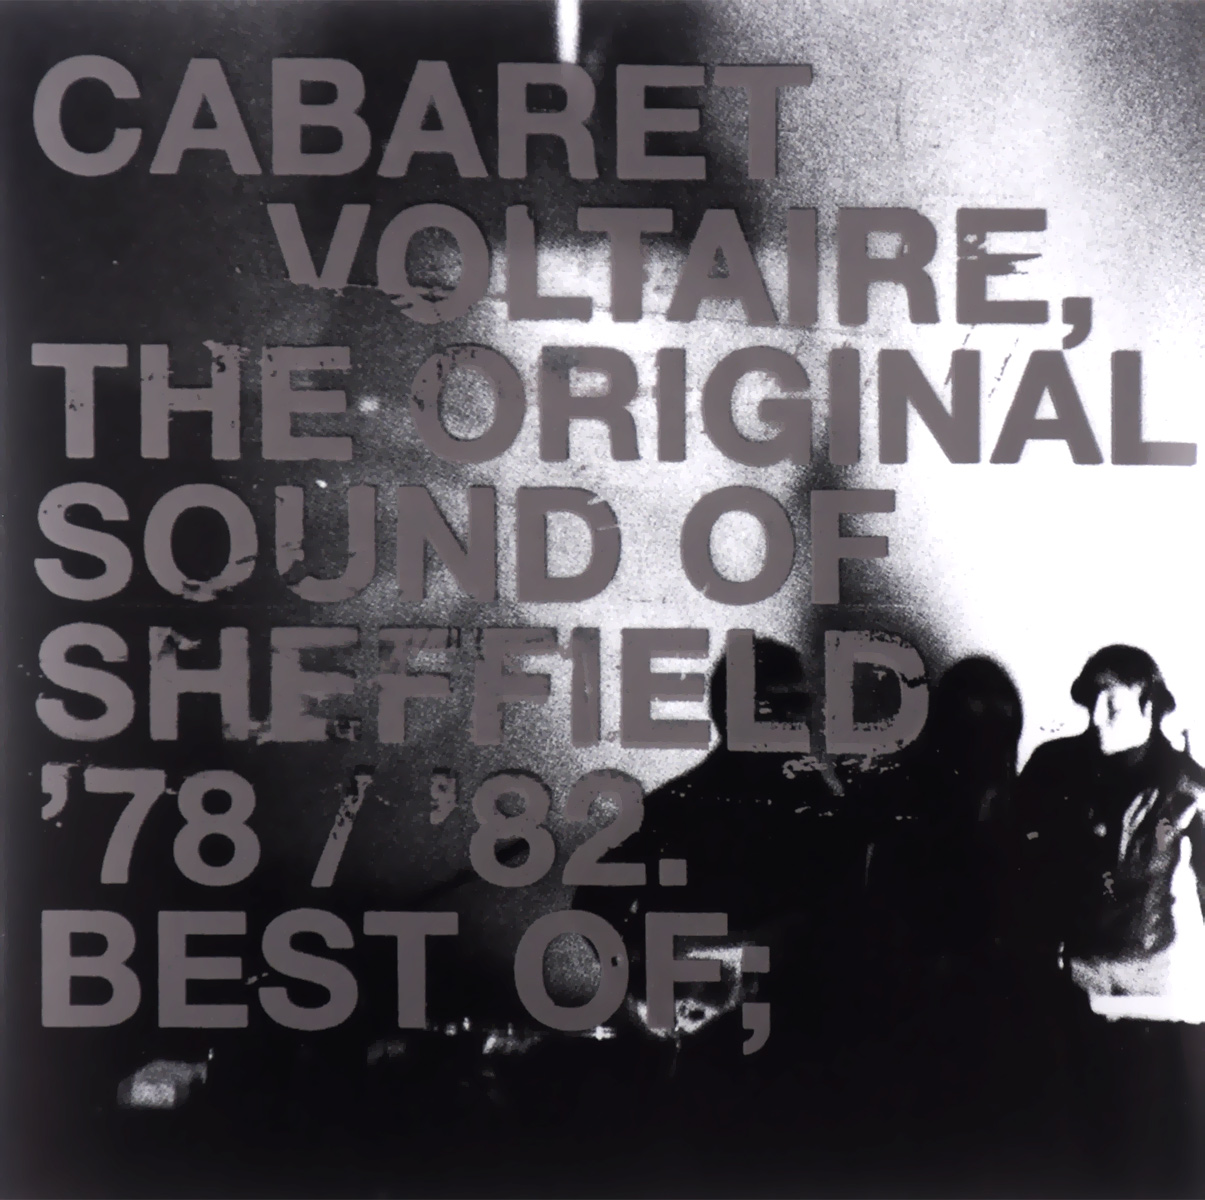 Cabaret Voltaire Cabaret Voltaire The Original Sound Of Sheffield 78  82 Best Of